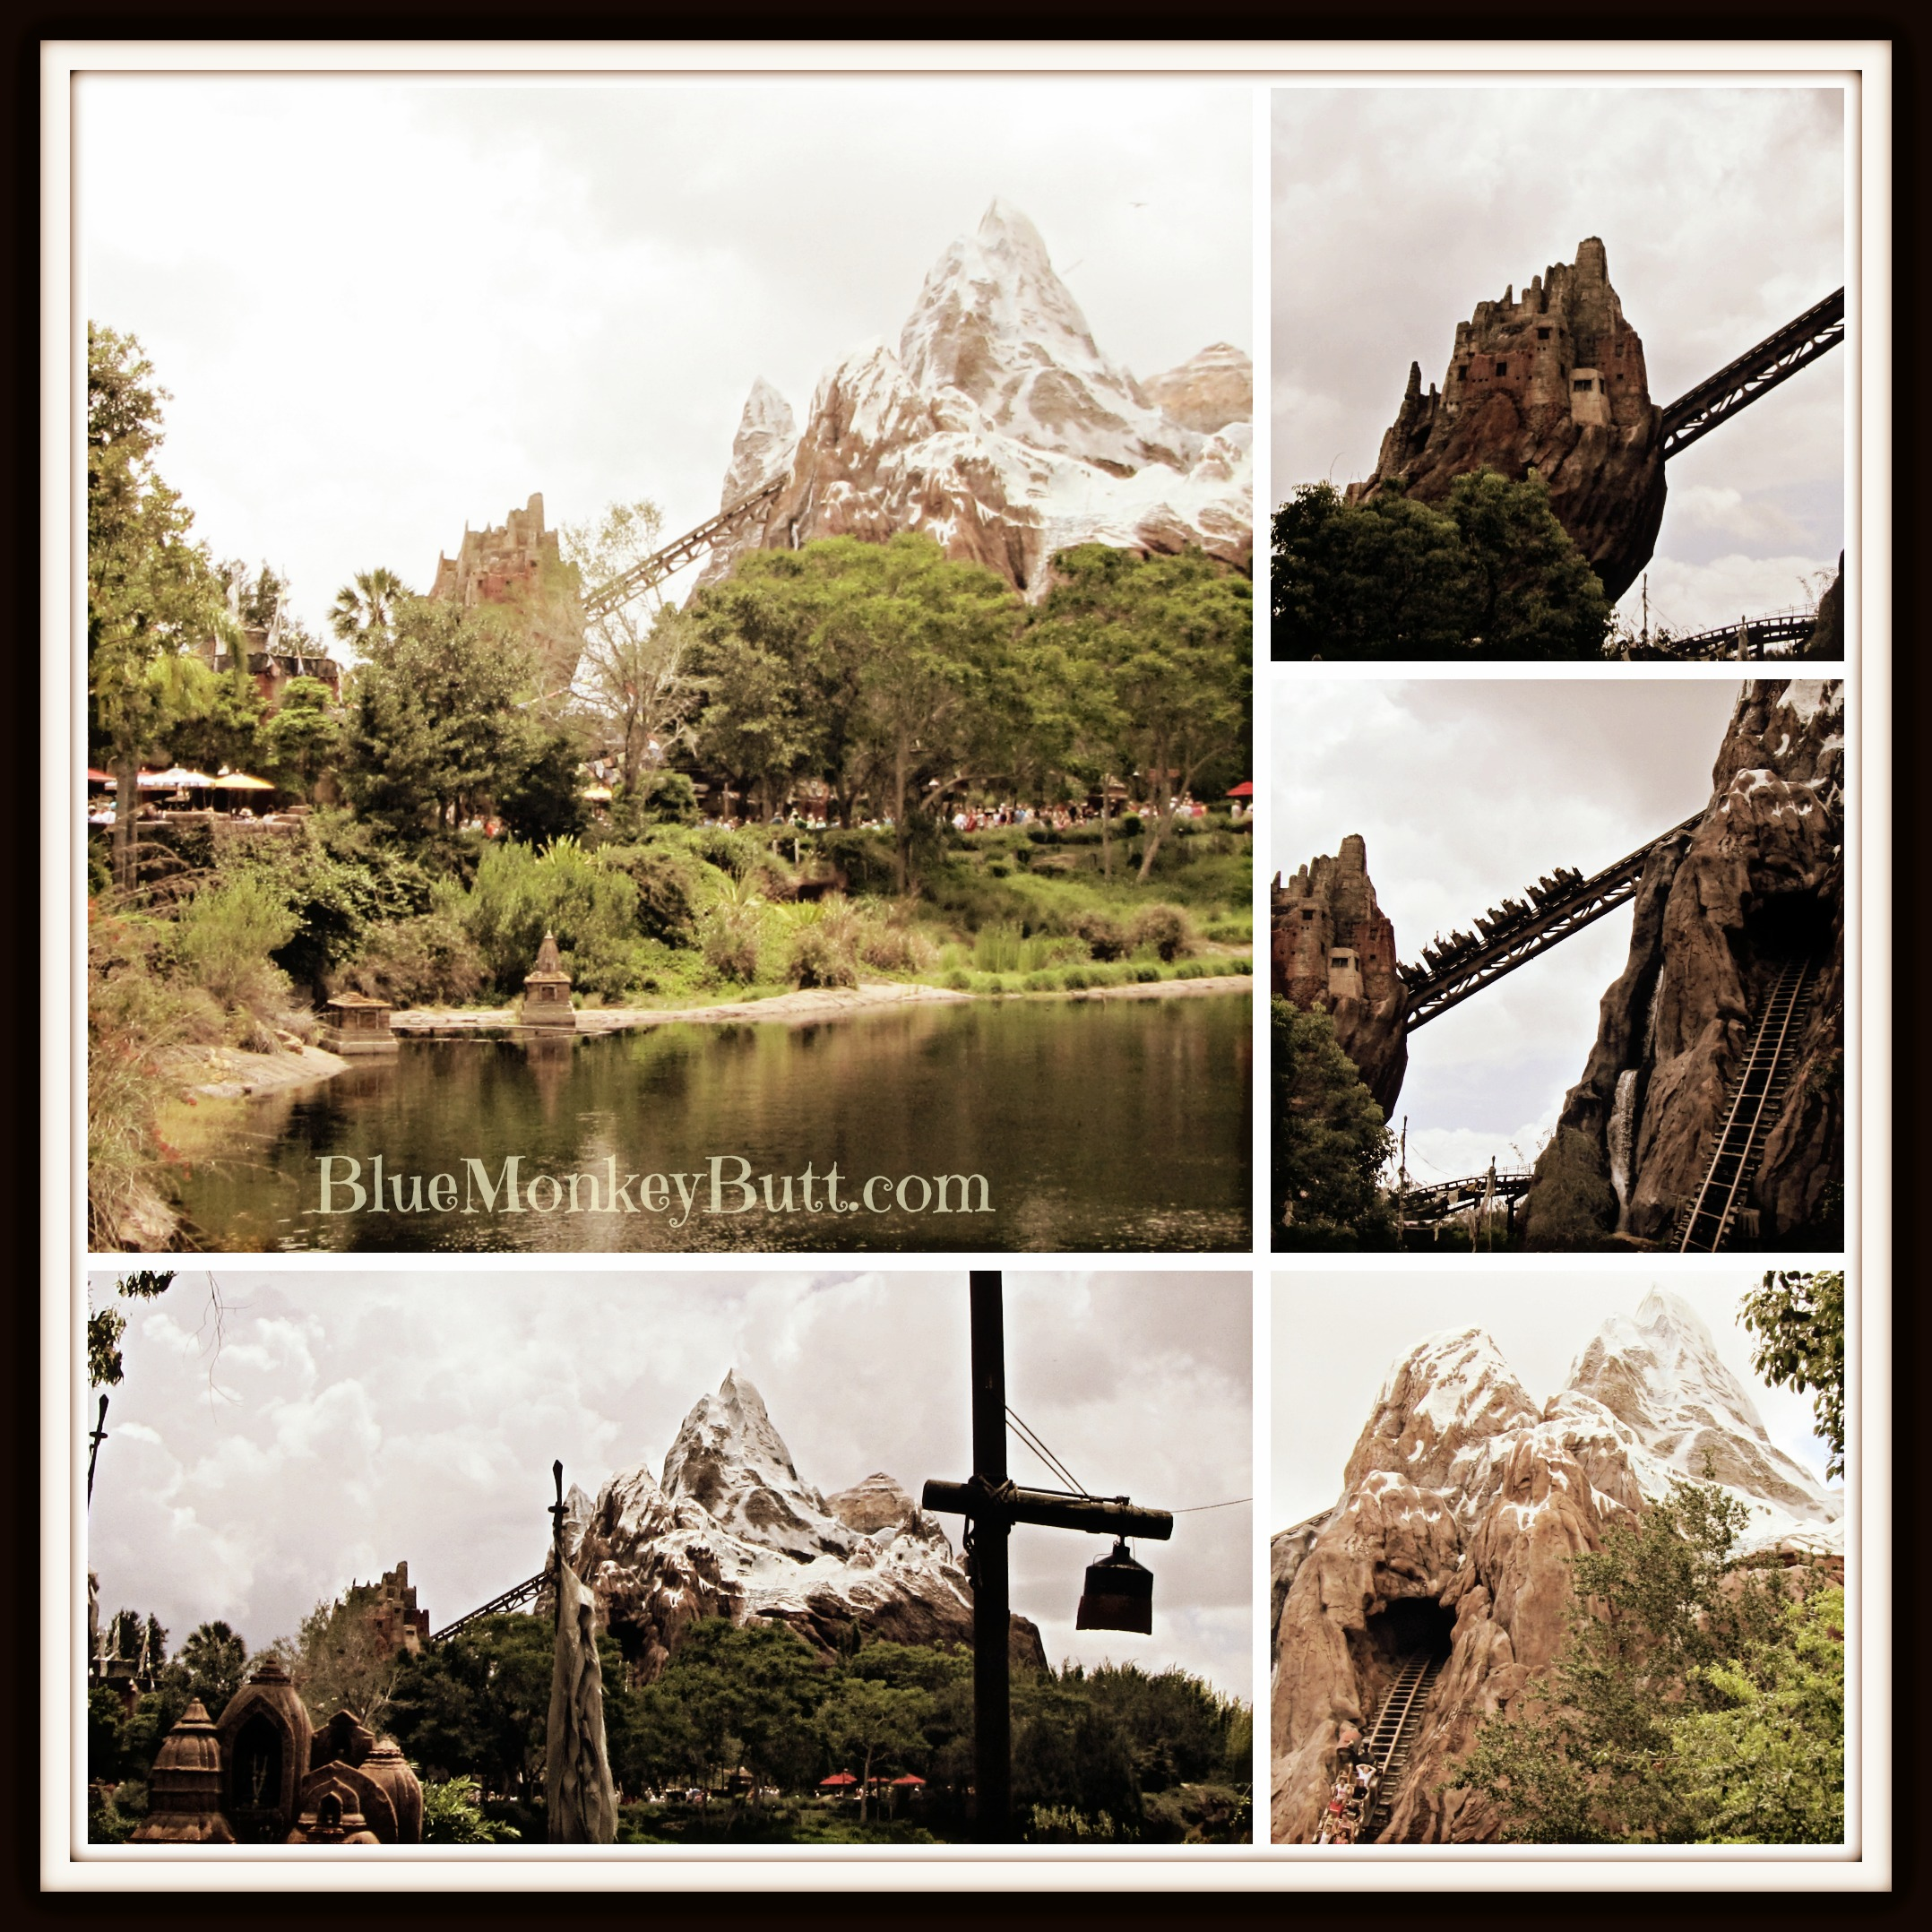 Collage of Expedition Everest